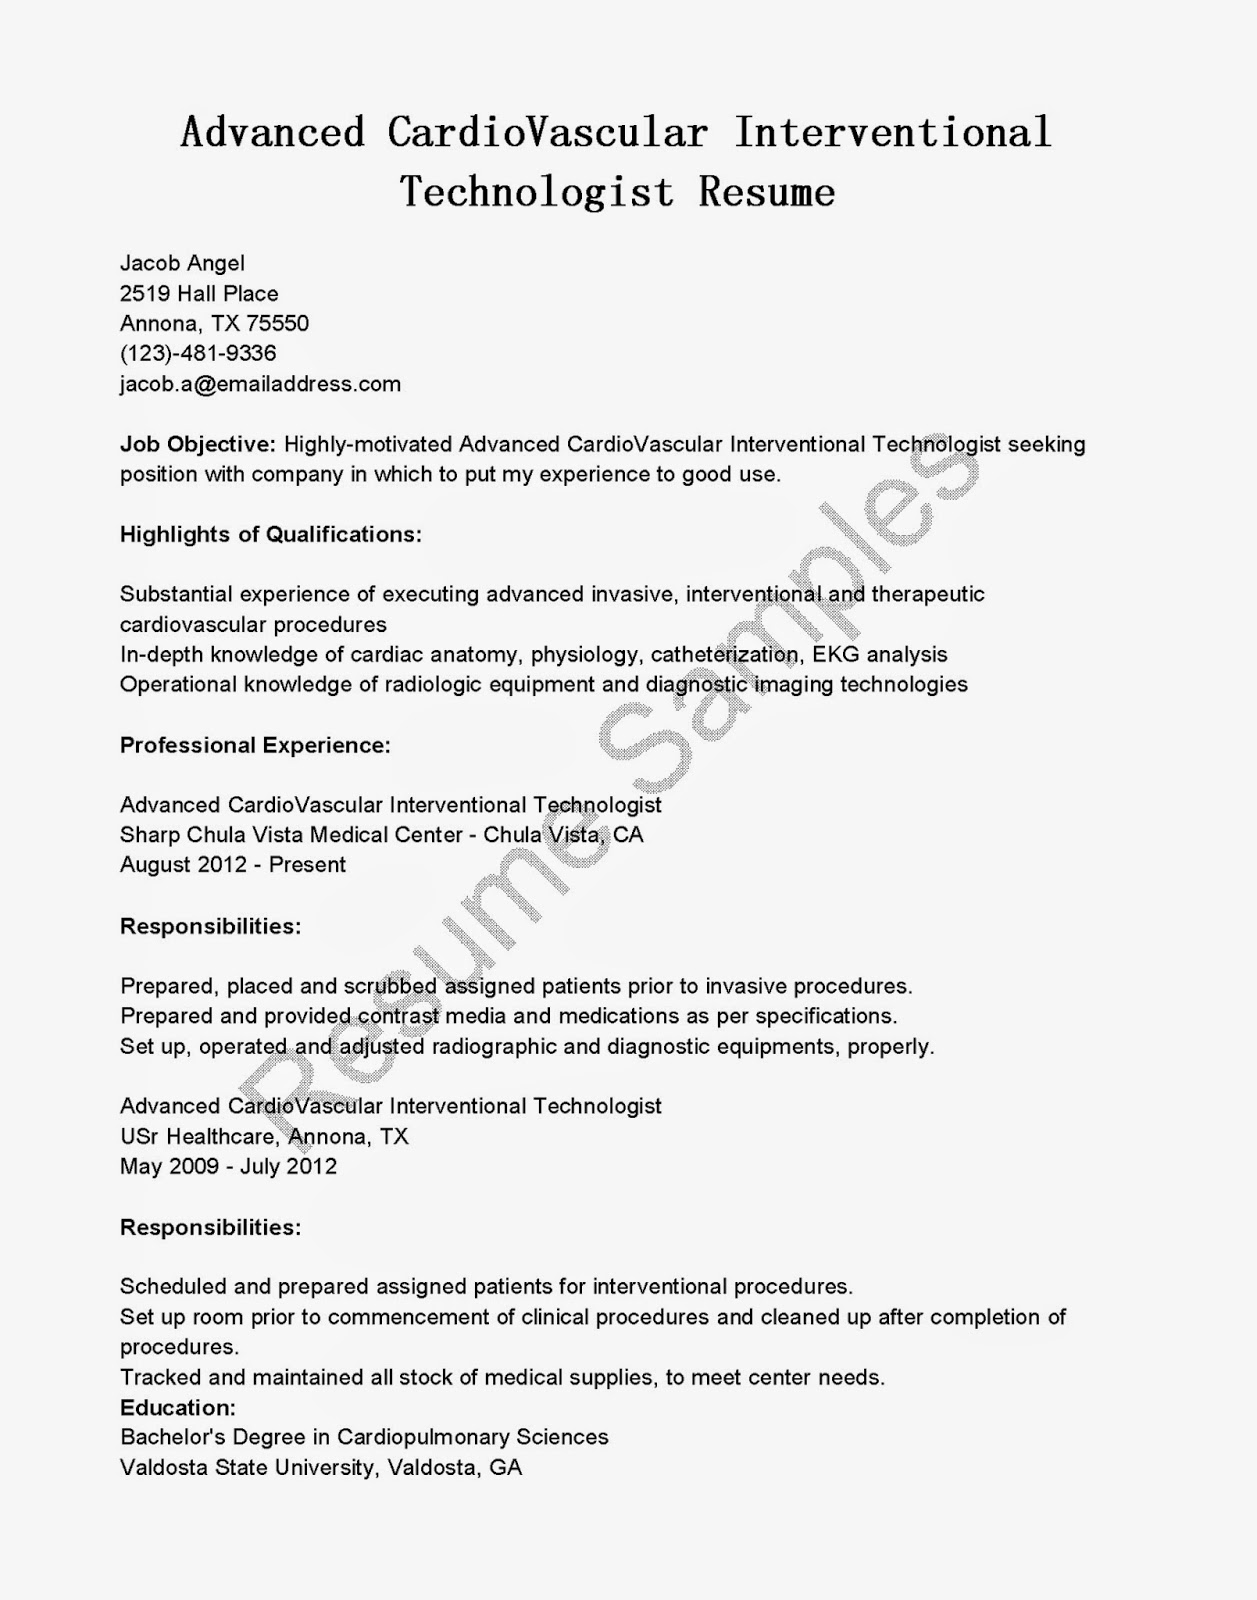 advanced cardiovascular interventional technologist resume sample